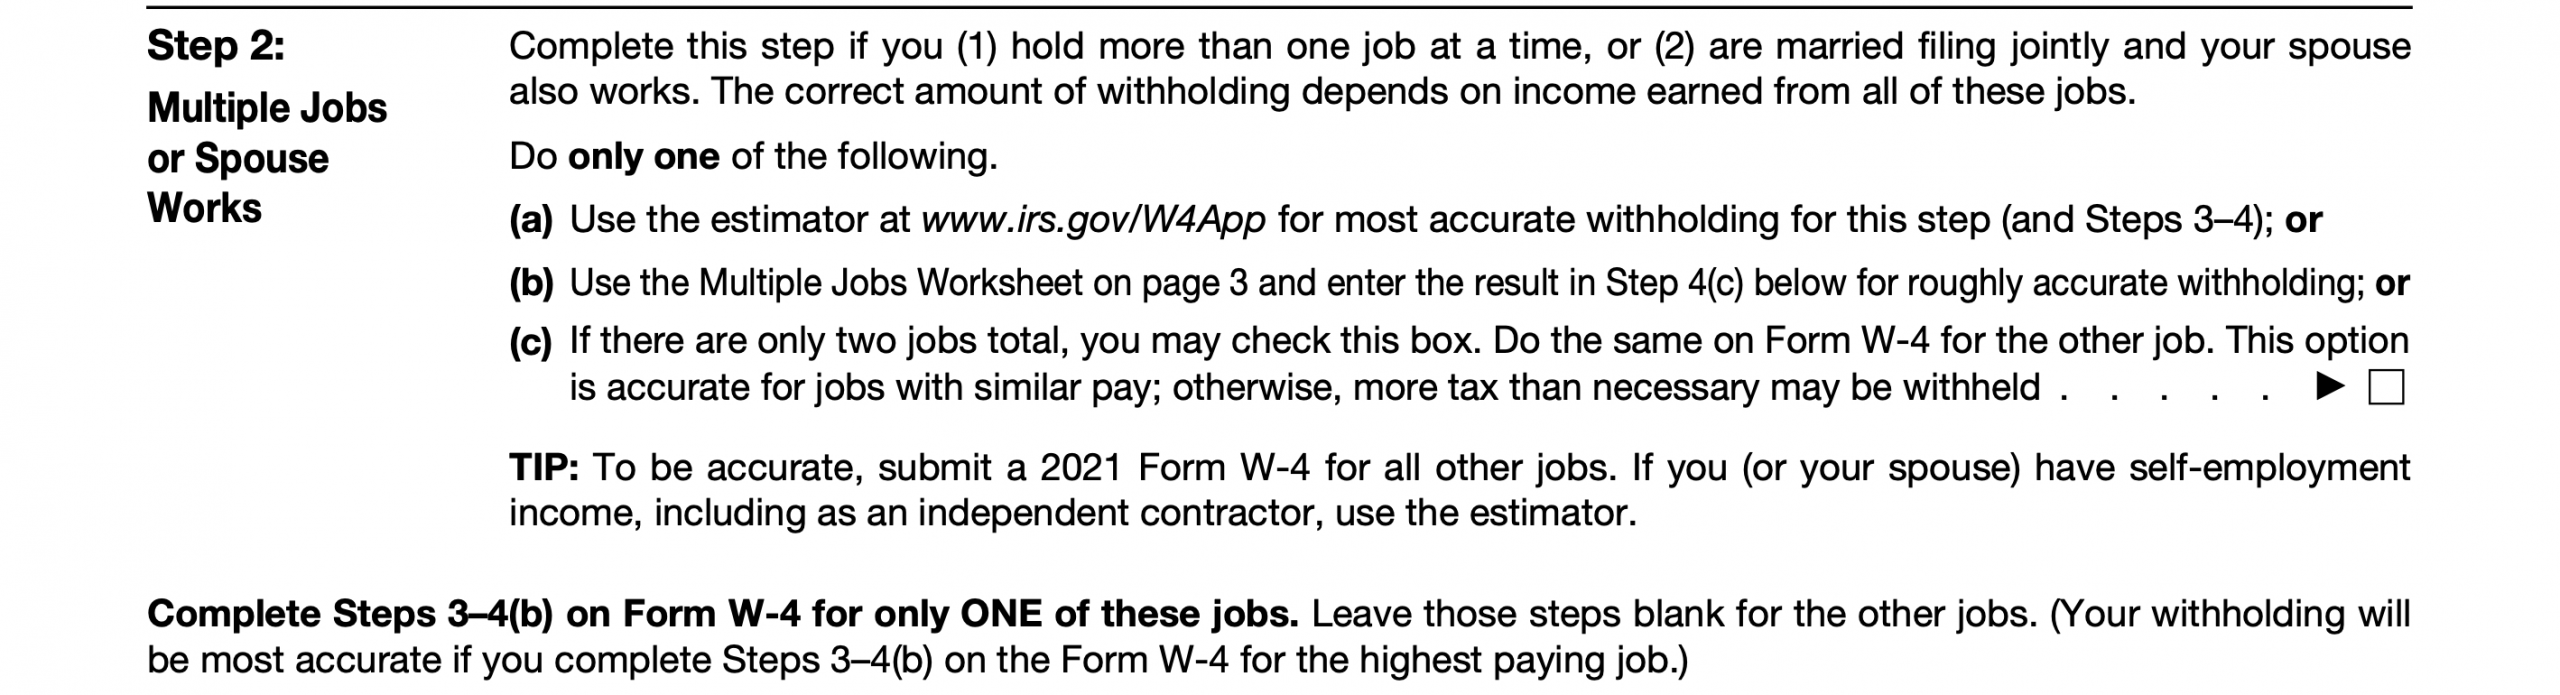 2021 Irs Form W-4: Simple Instructions + Pdf Download-2021 Printable Irs Forms W-4